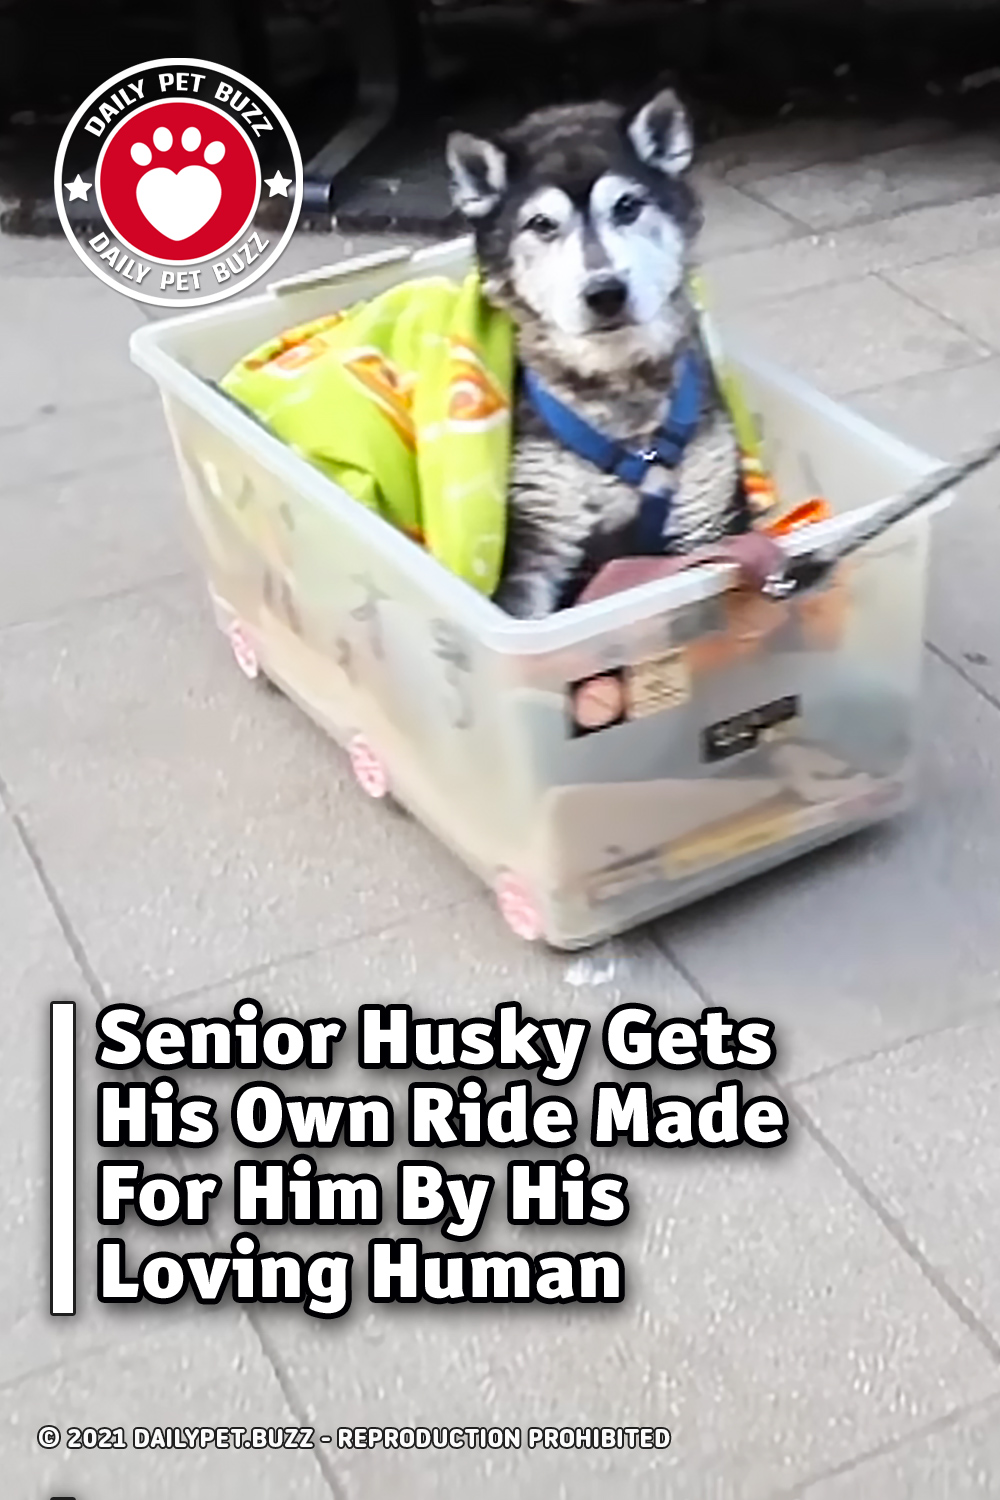 Senior Husky Gets His Own Ride Made For Him By His Loving Human